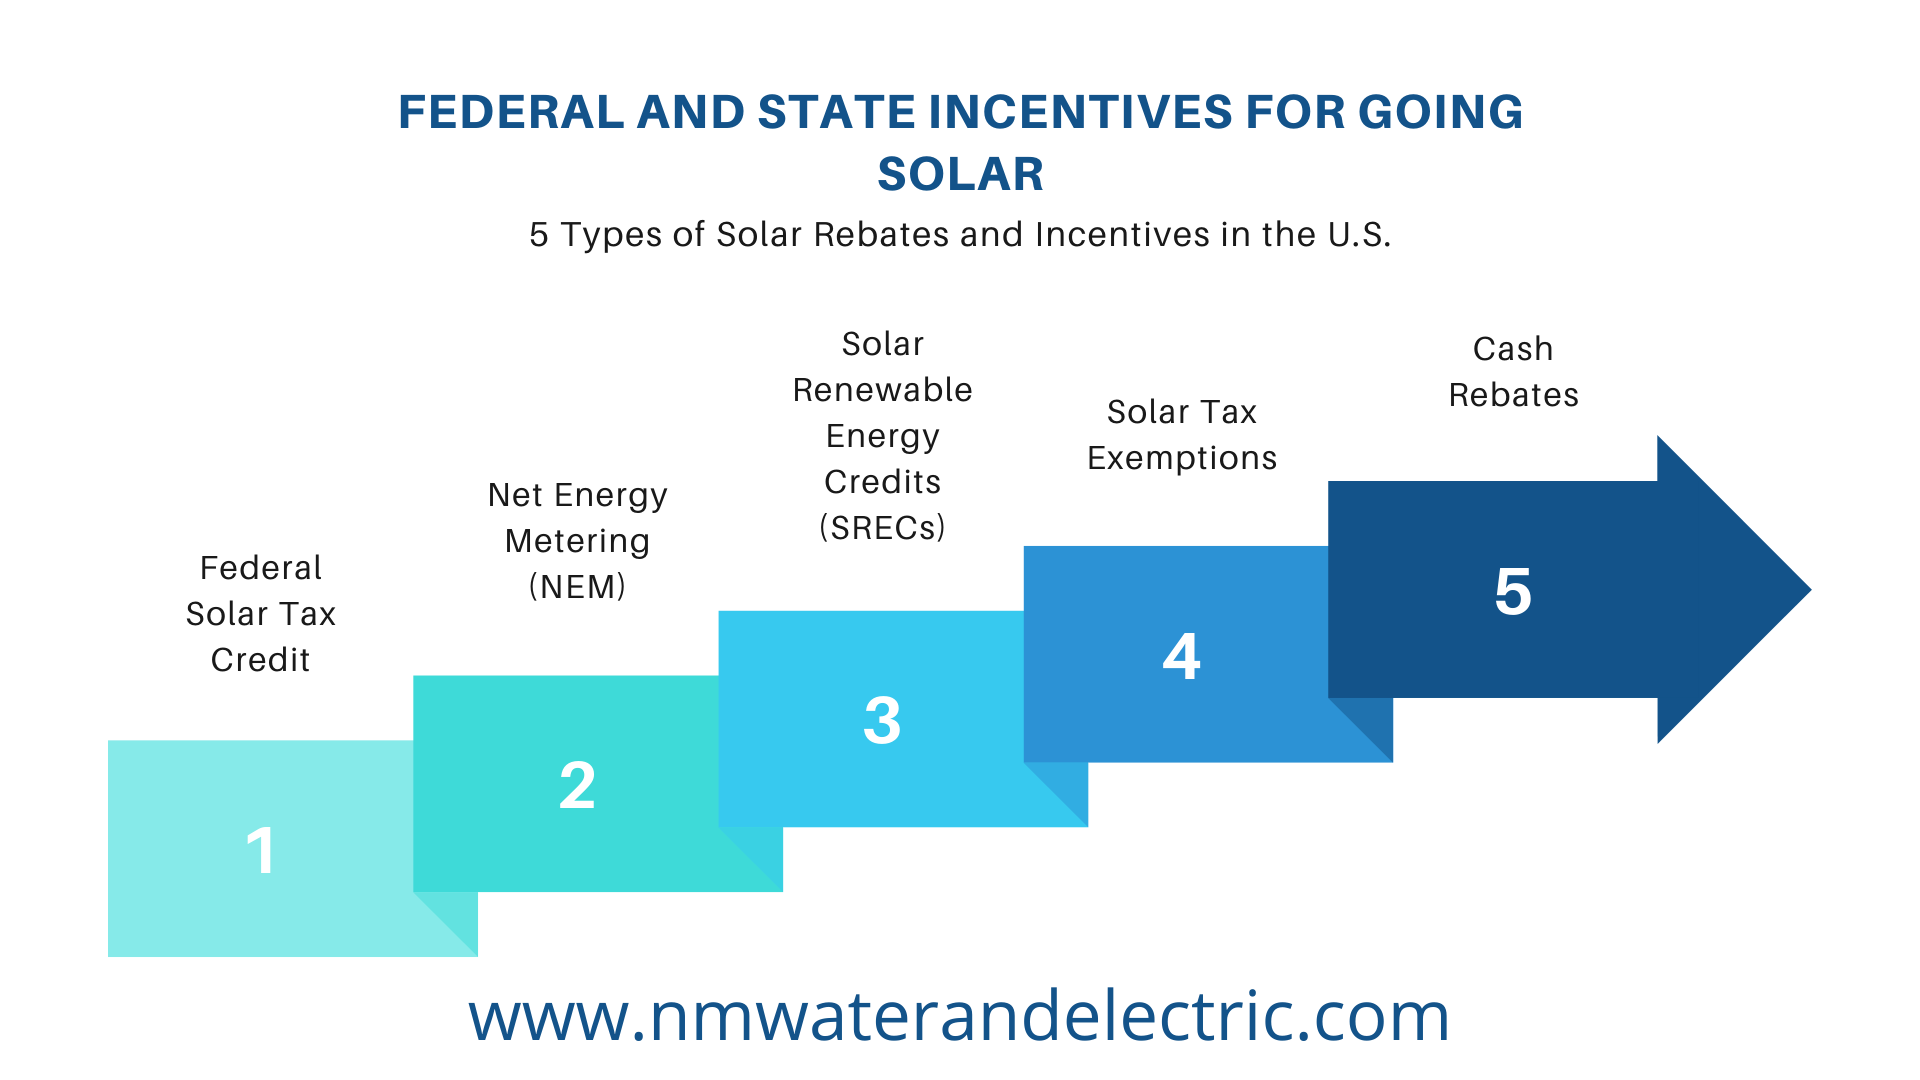 5 Types of Solar Rebates and Incentives in the U.S.